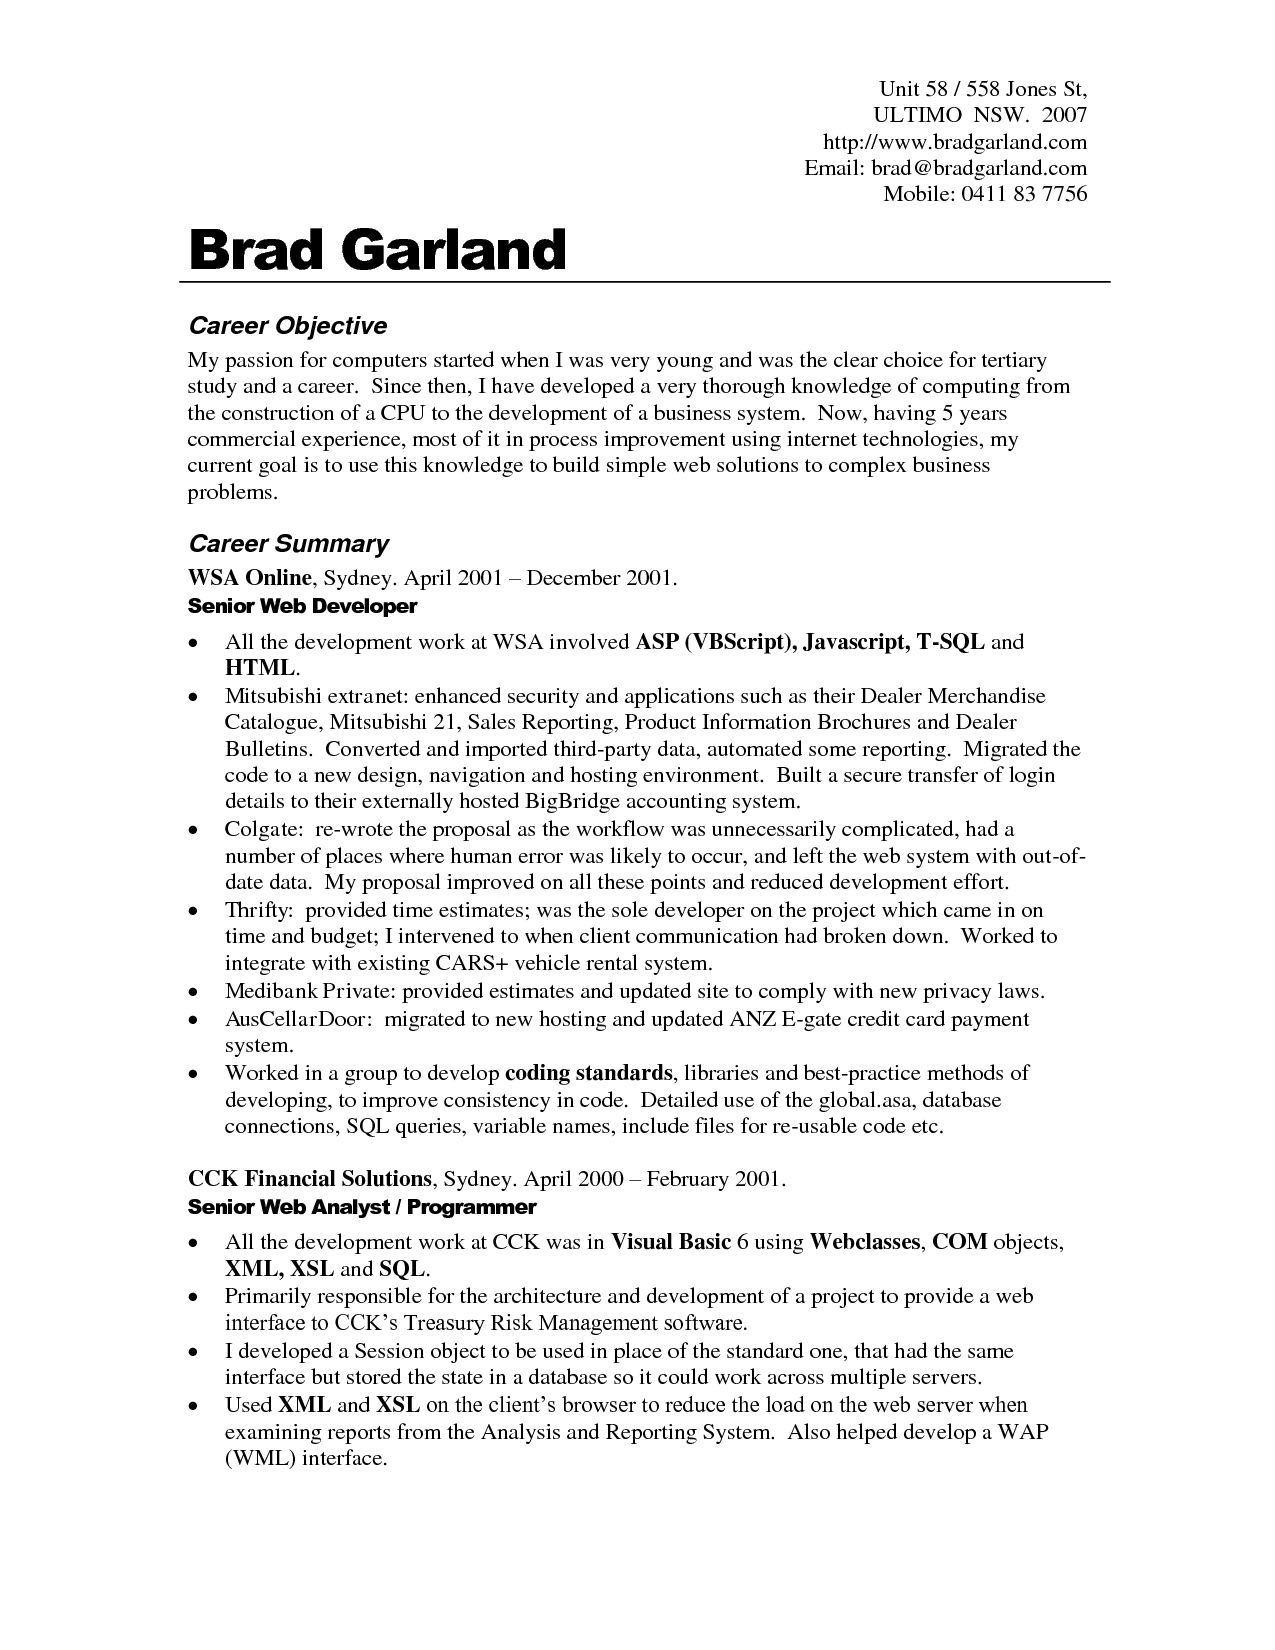 Sample Resume Objectives Sample Resume Action Verbs For Lawyers Formatting Back Post